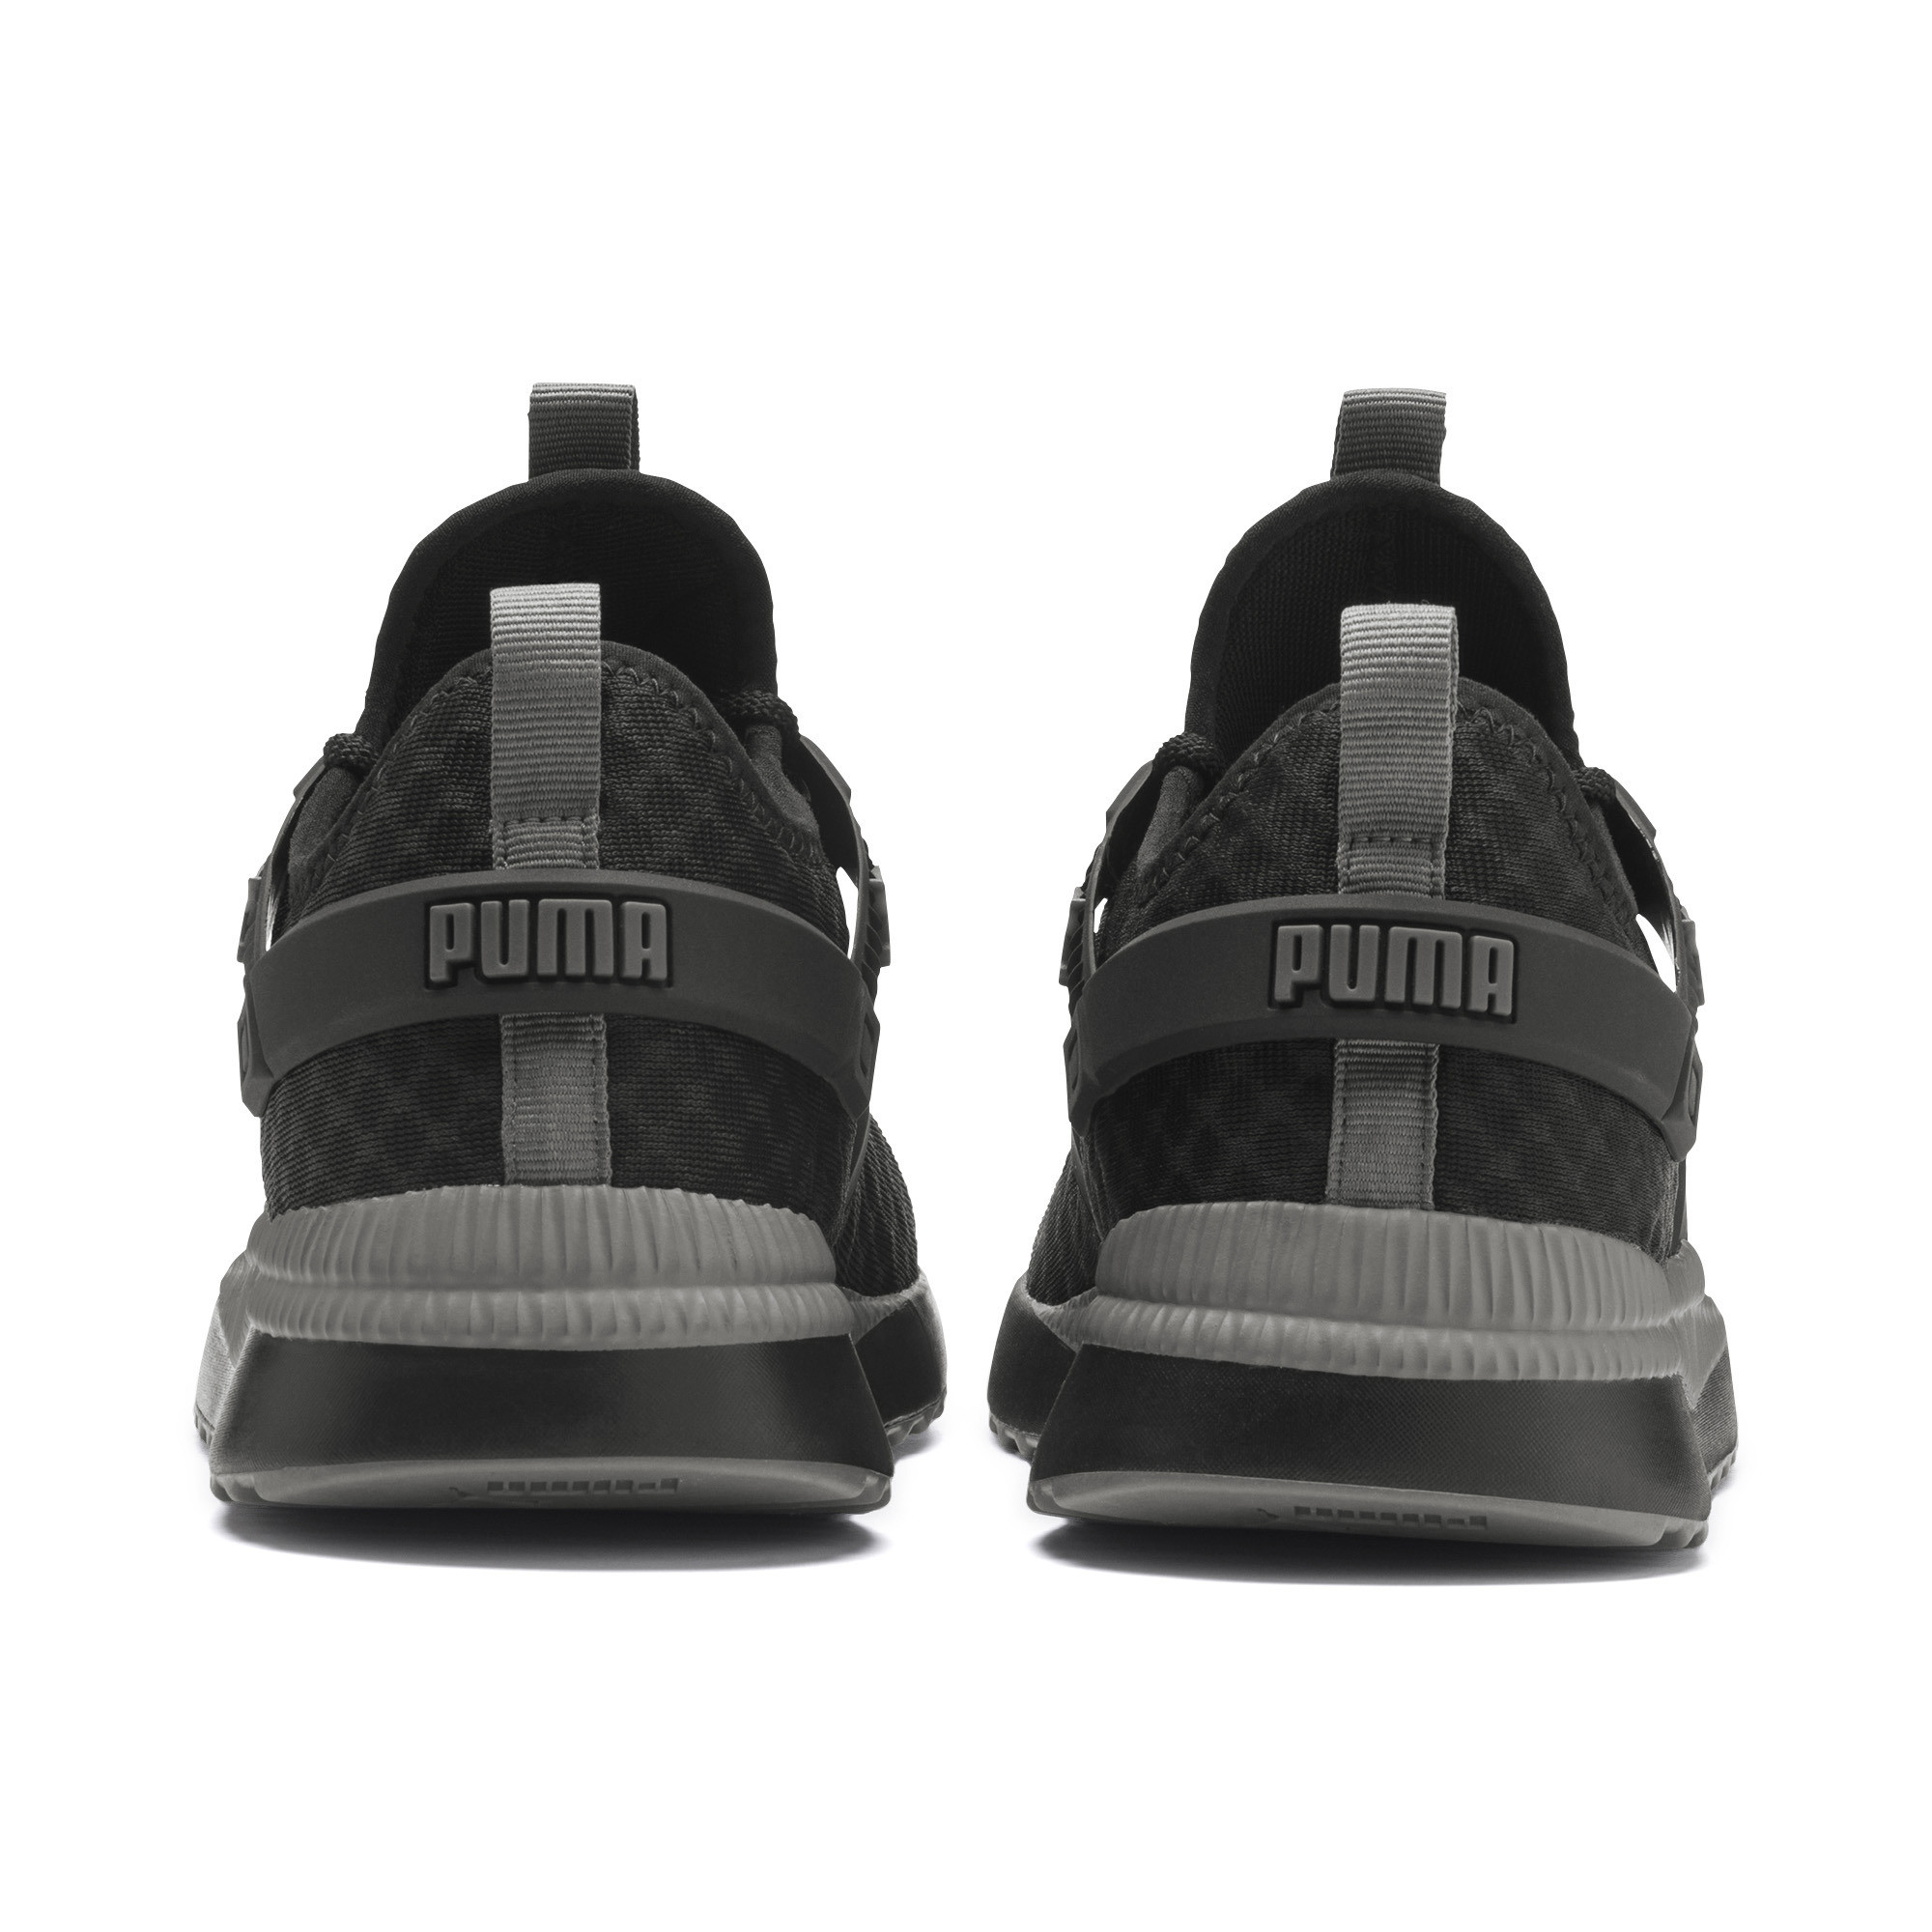 PUMA-Men-039-s-Pacer-Next-Excel-Core-Sneakers thumbnail 11